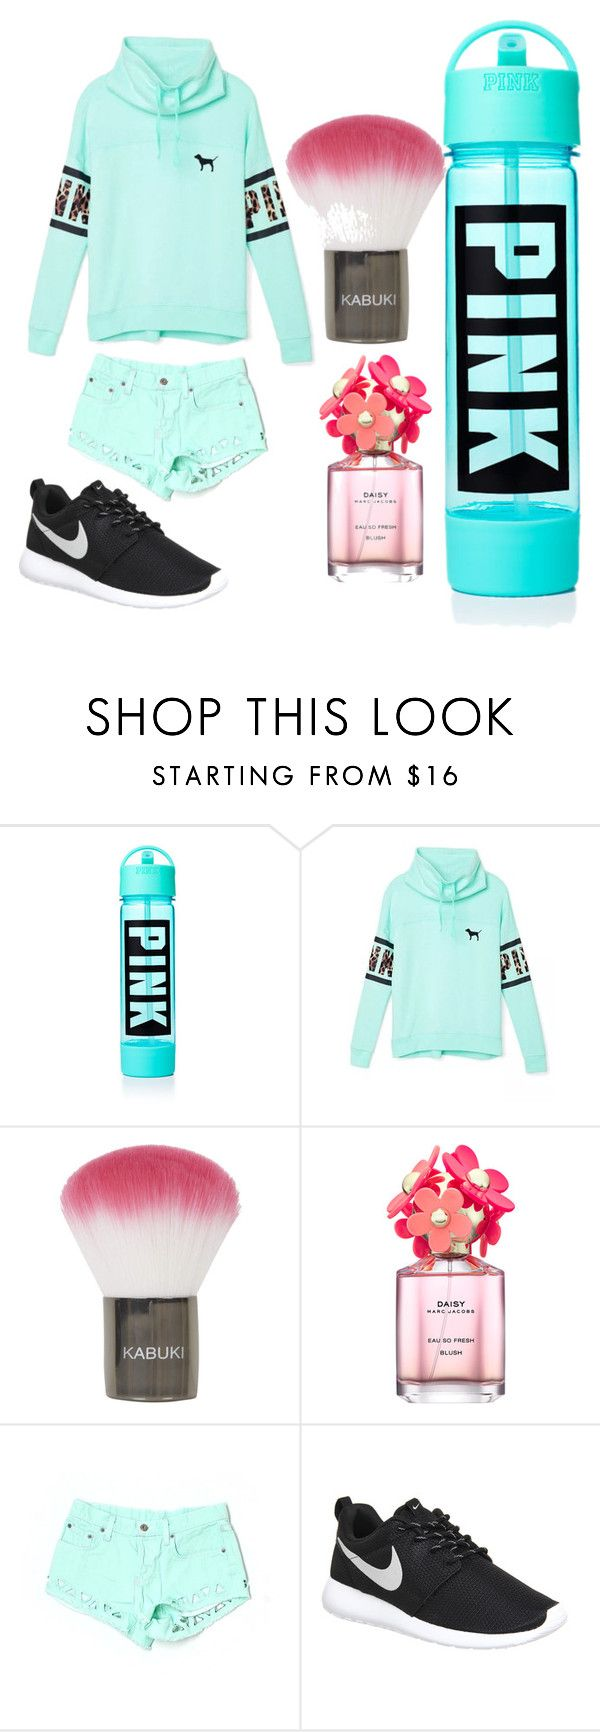 """Untitled #12"" by mikayla8h on Polyvore featuring Victoria's Secret, Topshop, Marc Jacobs, Carmar, NIKE, women's clothing, women, female, woman and misses"